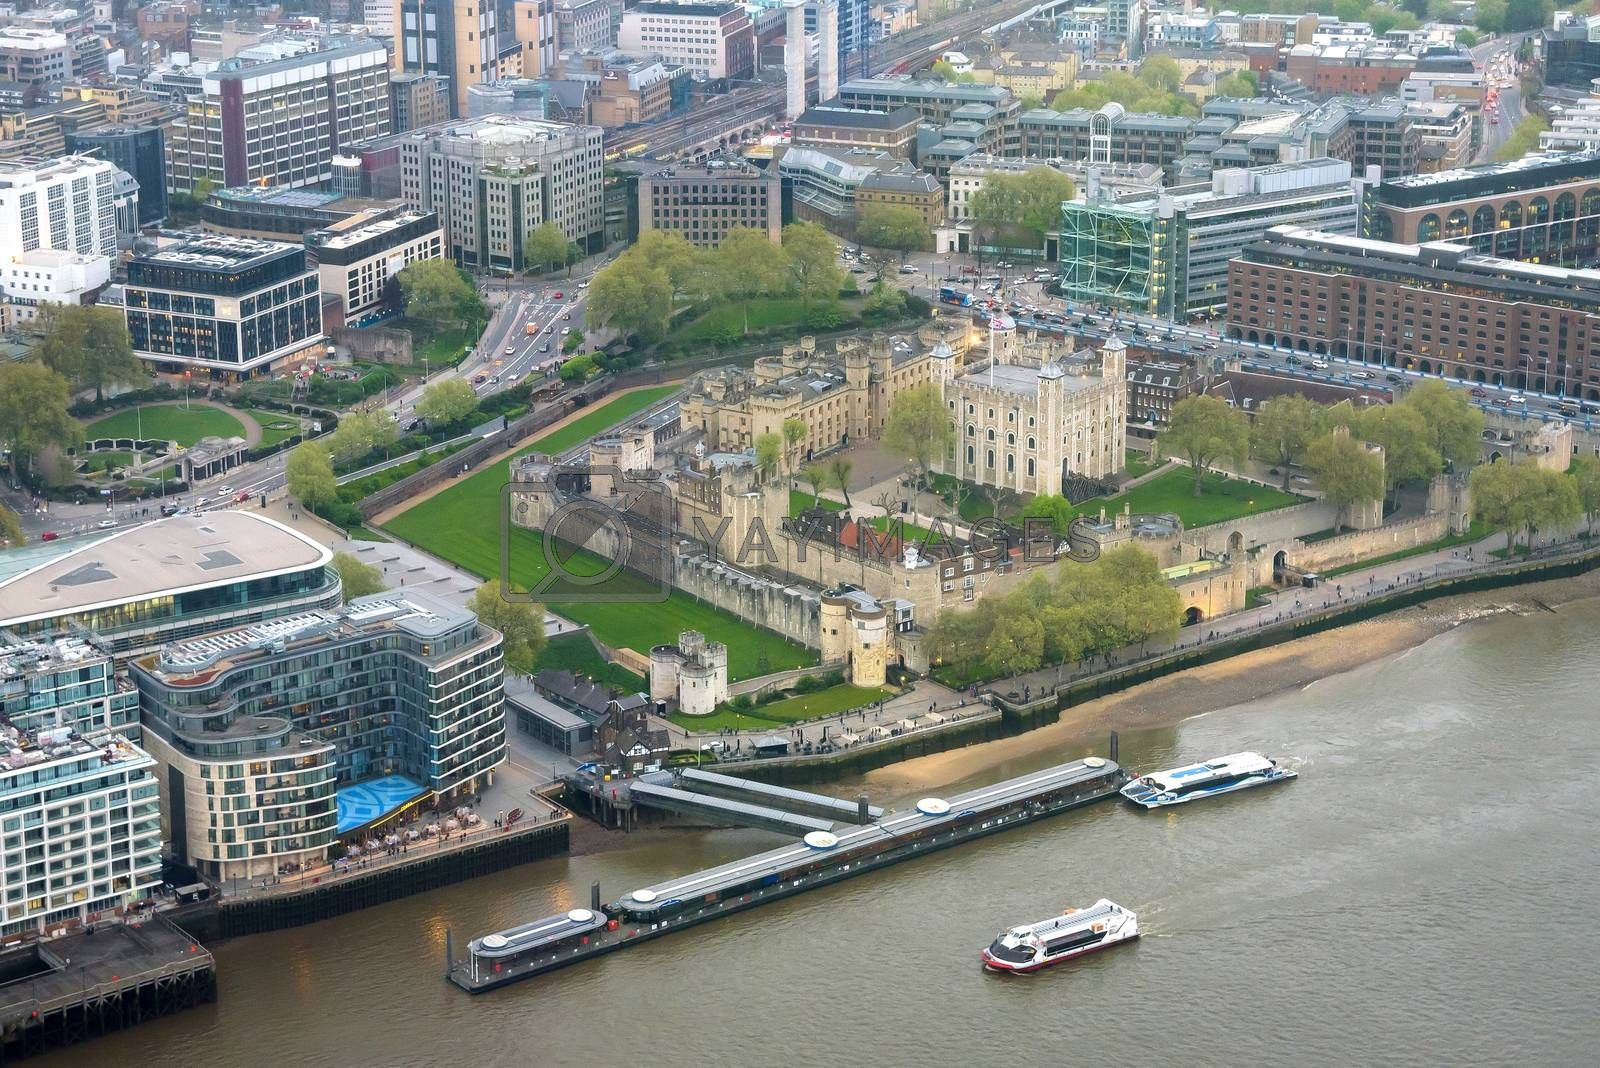 Royalty free image of Aerial view of Tower of London by mkos83